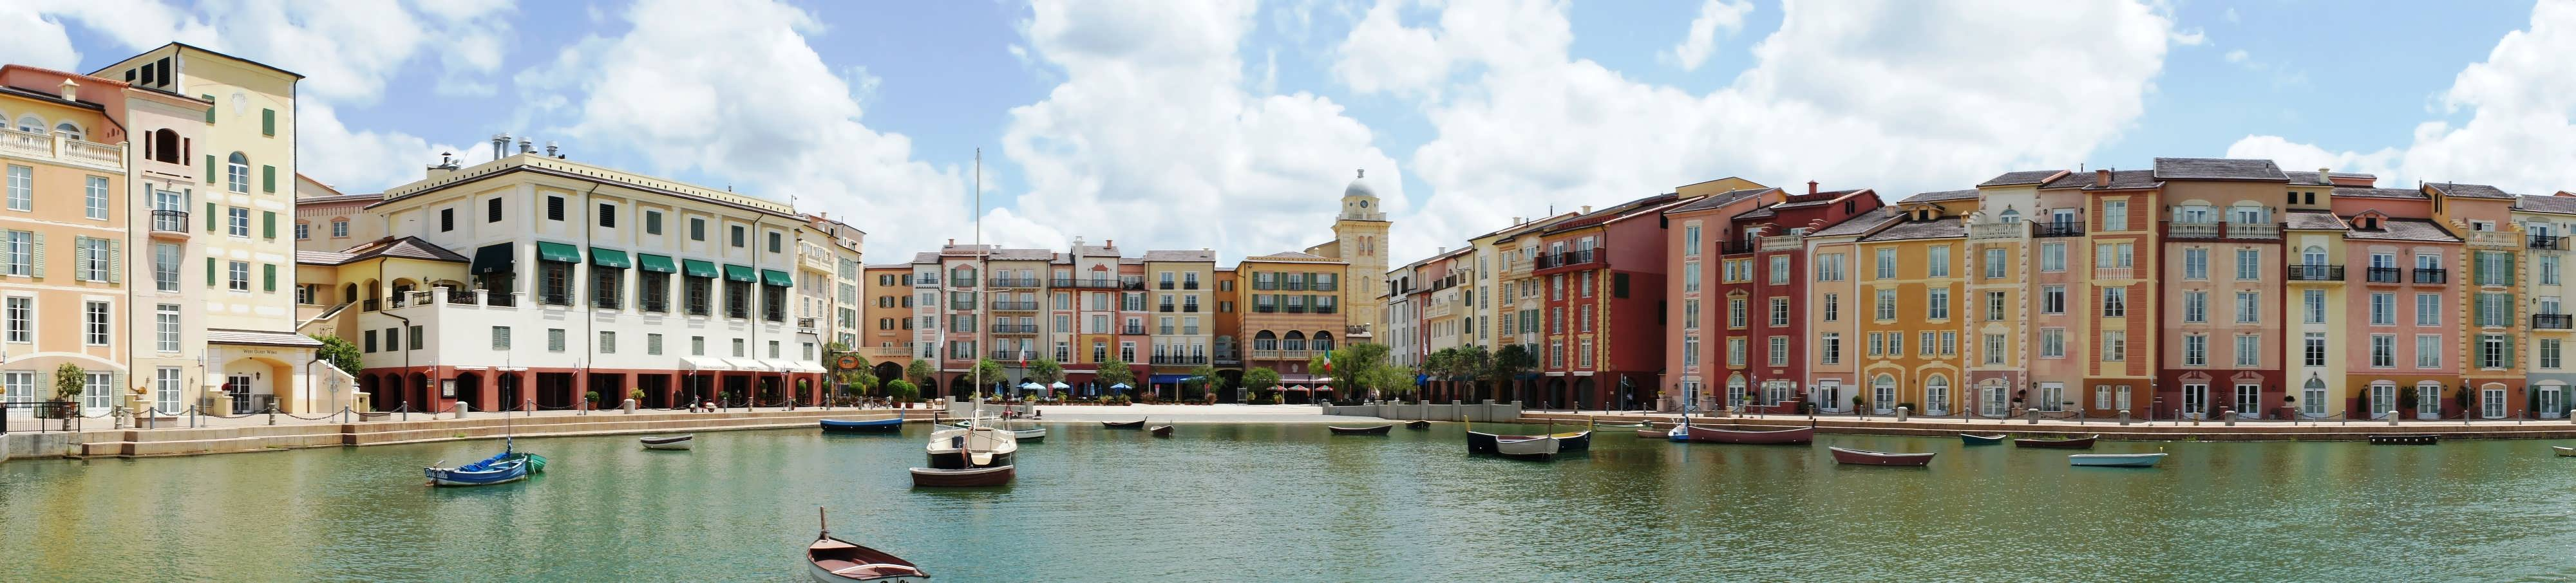 Portofino Bay Hotel Harbor Piazza panorama